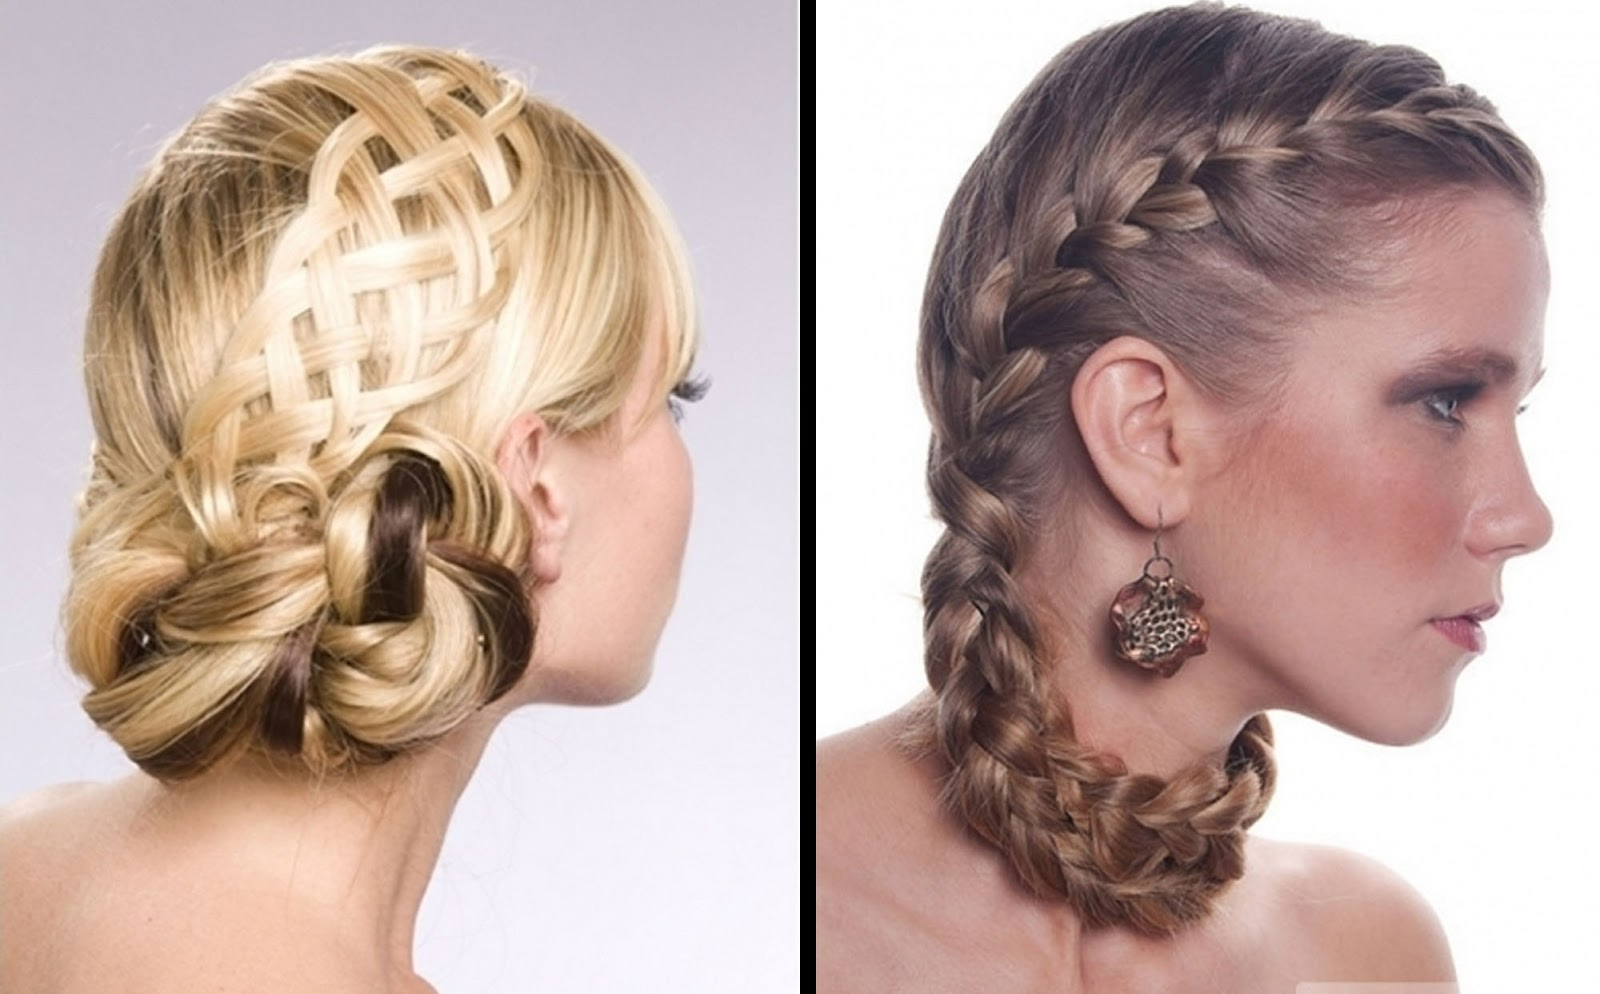 36 Beautiful Prom Hairstyles For Short Hair Girls | Hairstylo Regarding Short Hairstyles For Prom Updos (View 11 of 25)